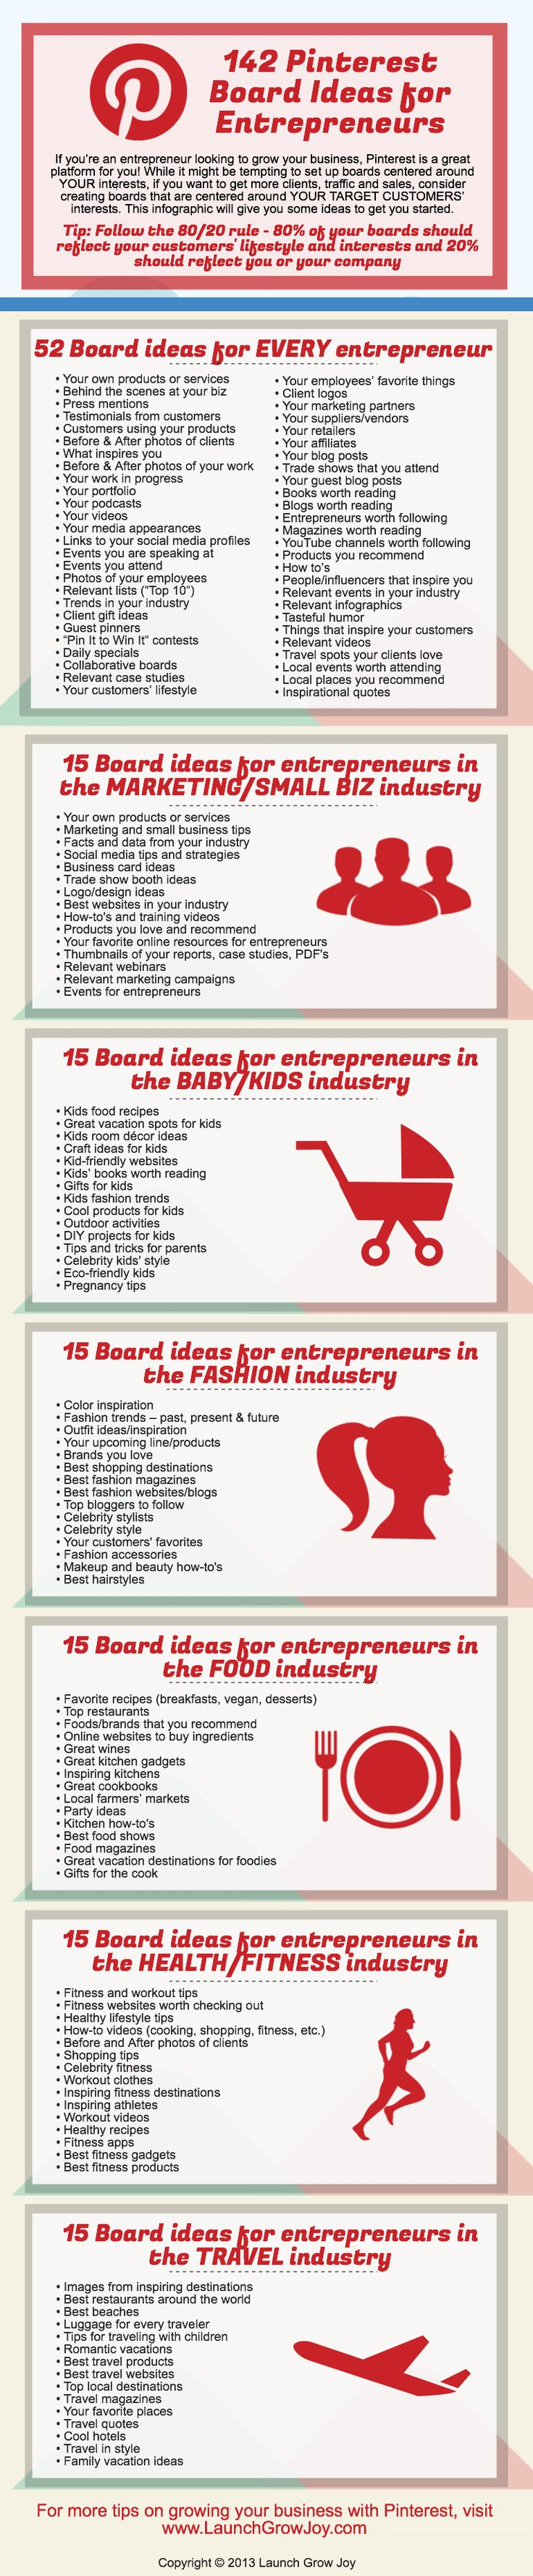 142 Pinterest Board Ideas for Entrepreneurs - Launch Grow Joy - Great infographic with ideas for #entrepreneurs  Pinned by Gil Datz of #UZUmedia - www.uzu-media.com